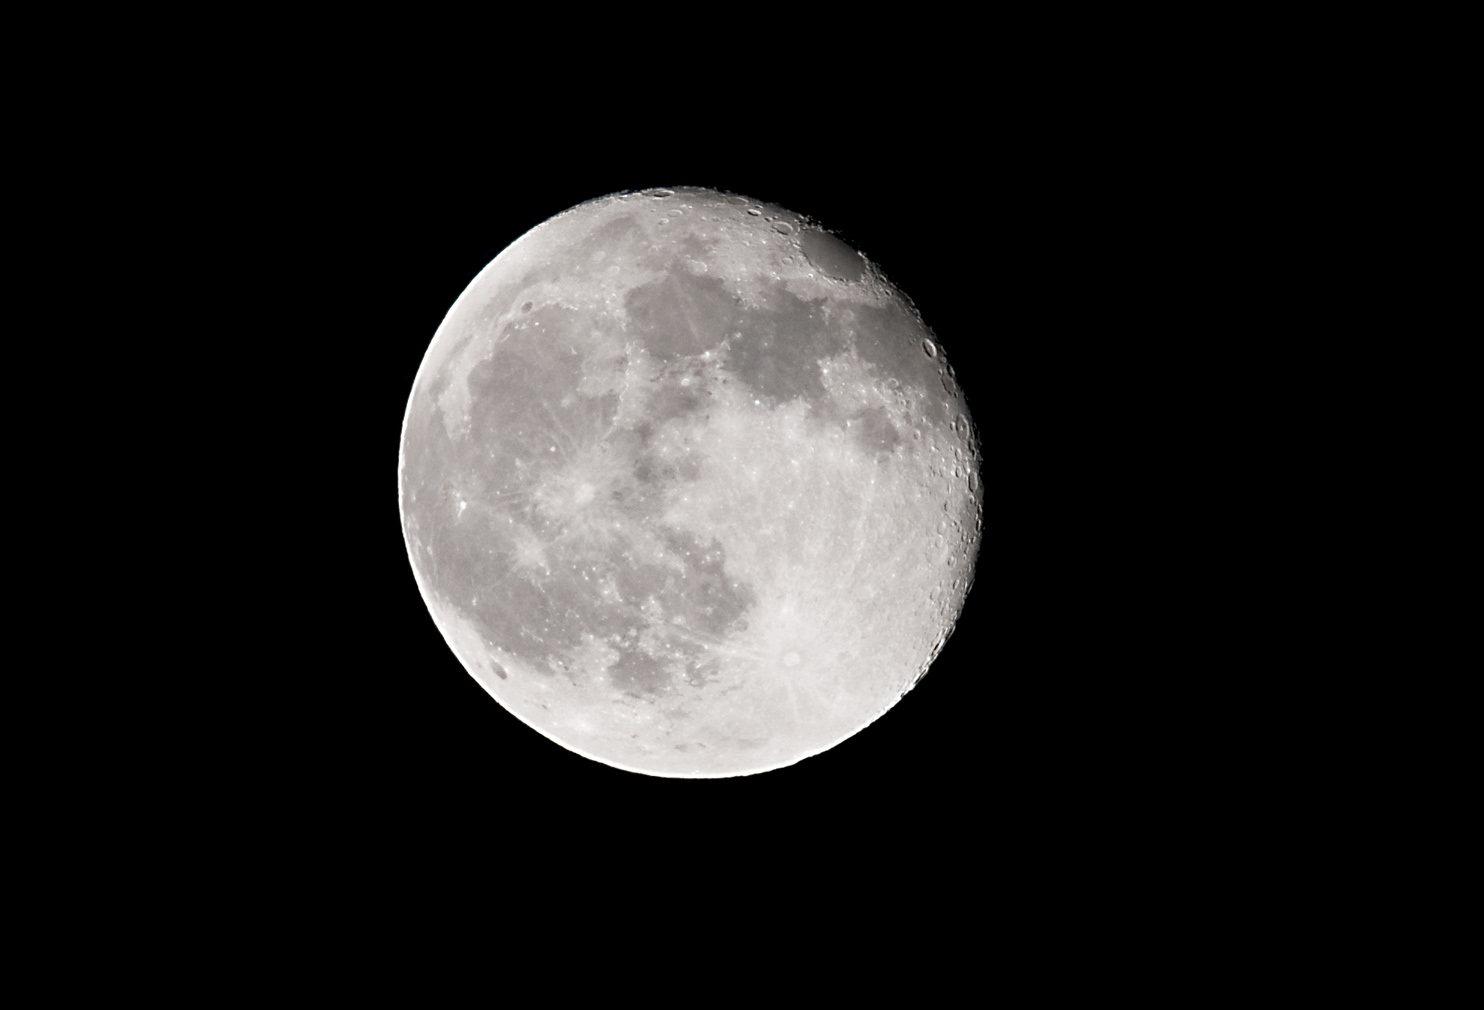 Full Moon taken with Sigma 500 mm lens